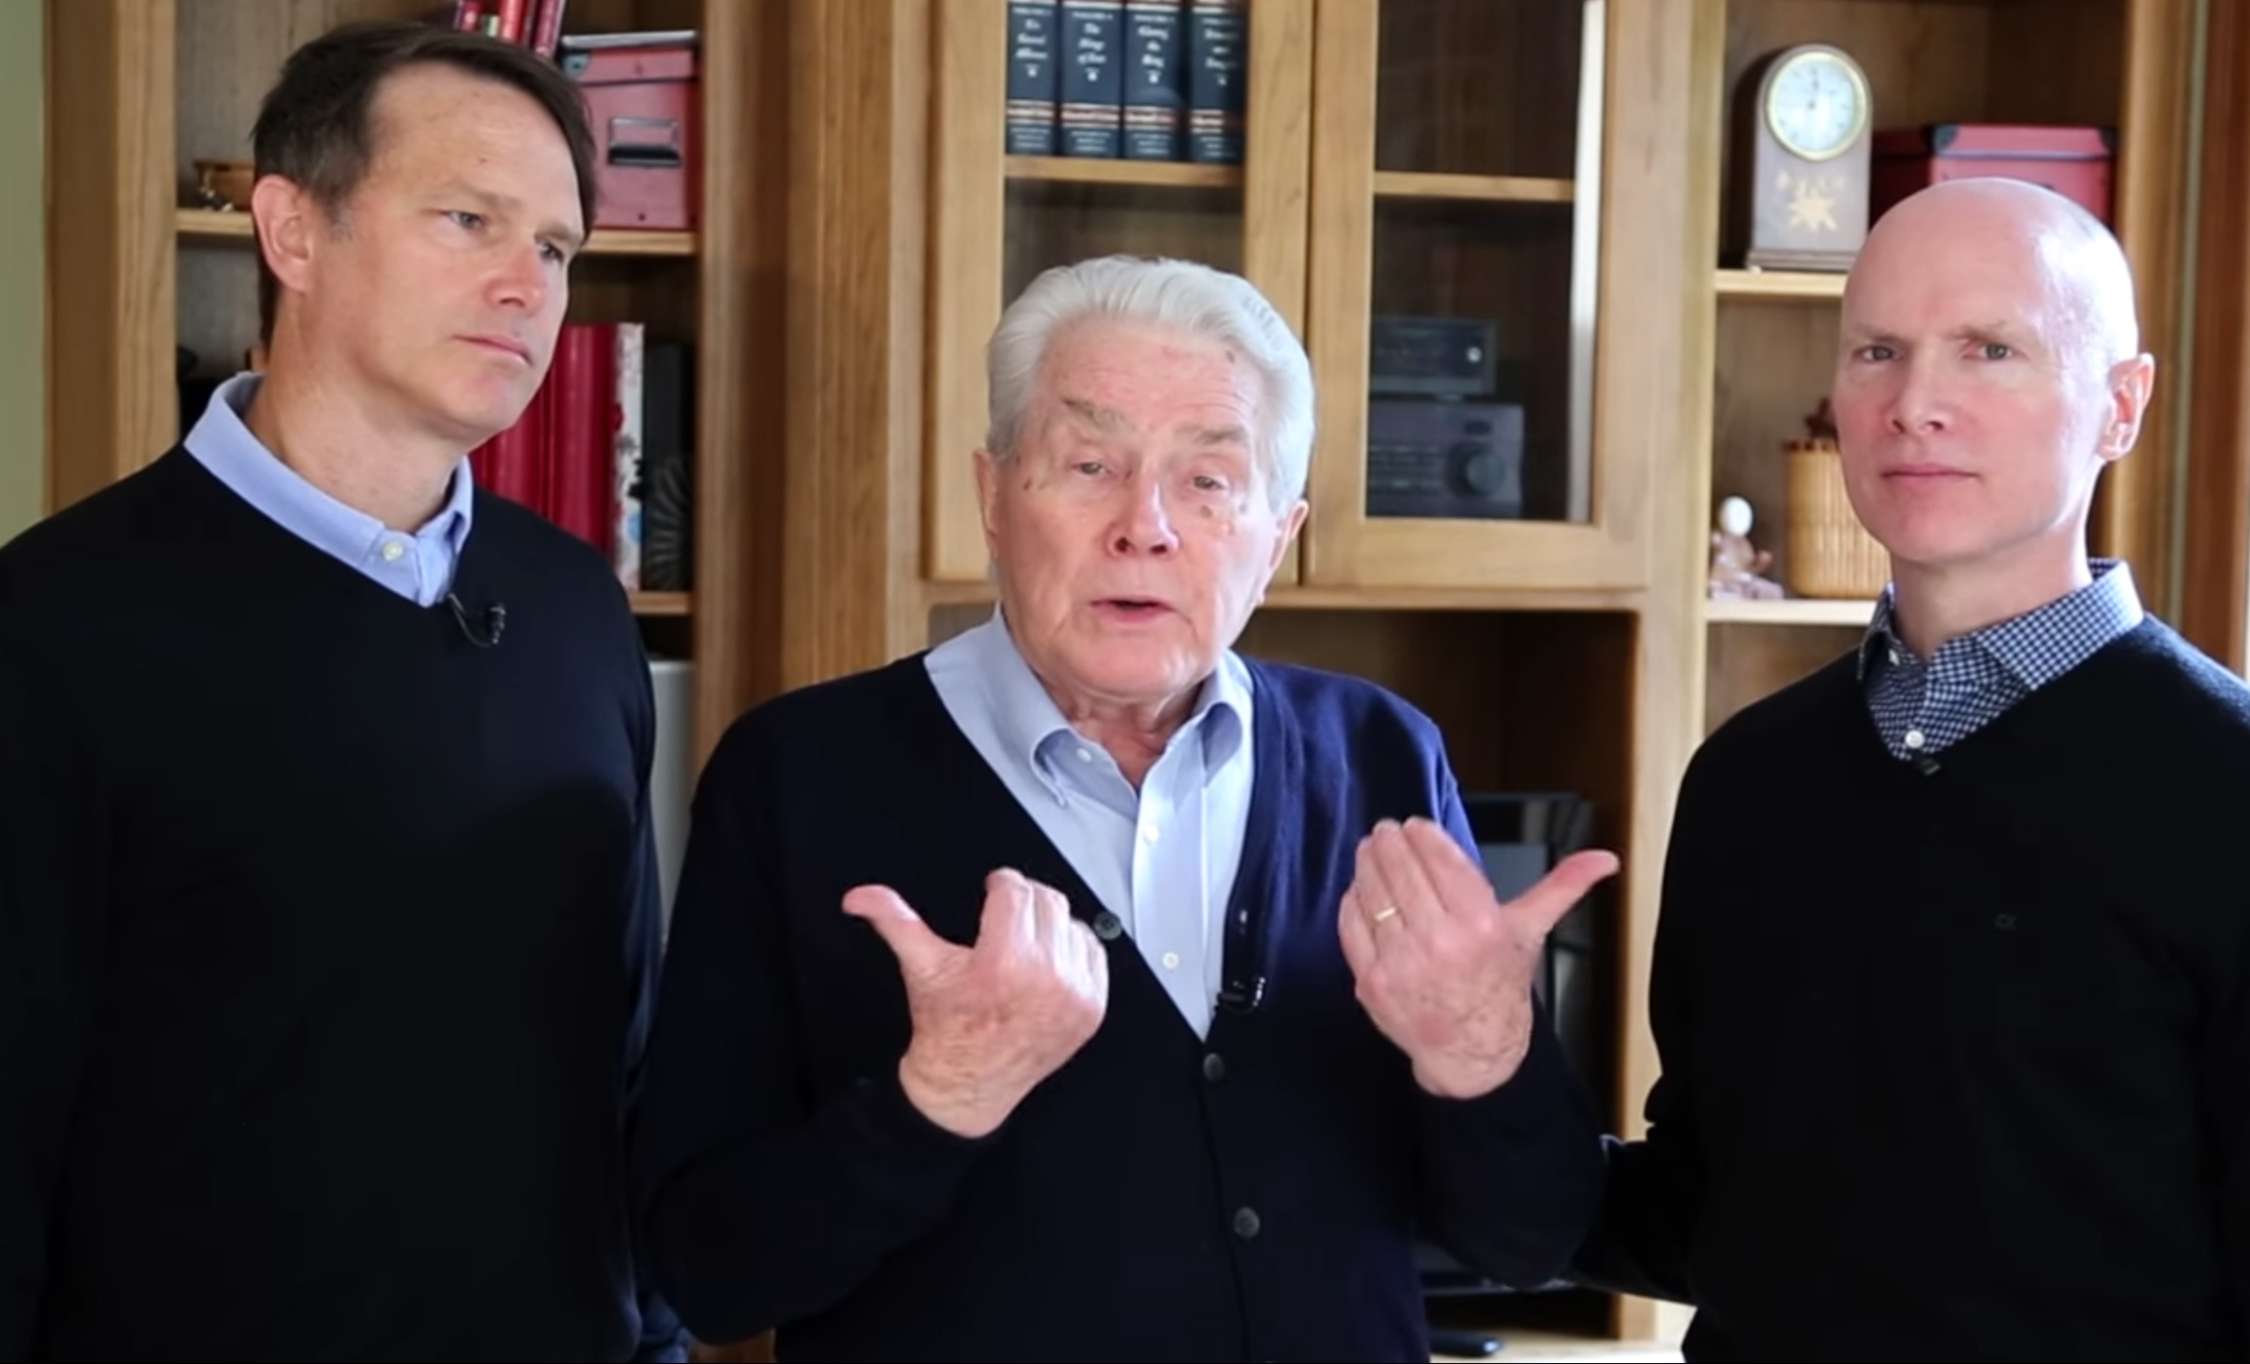 Luis Palau, center, announces his cancer diagnosis via video on his website Palau.org with his sons Andrew, left, and Kevin, right. Video screenshot